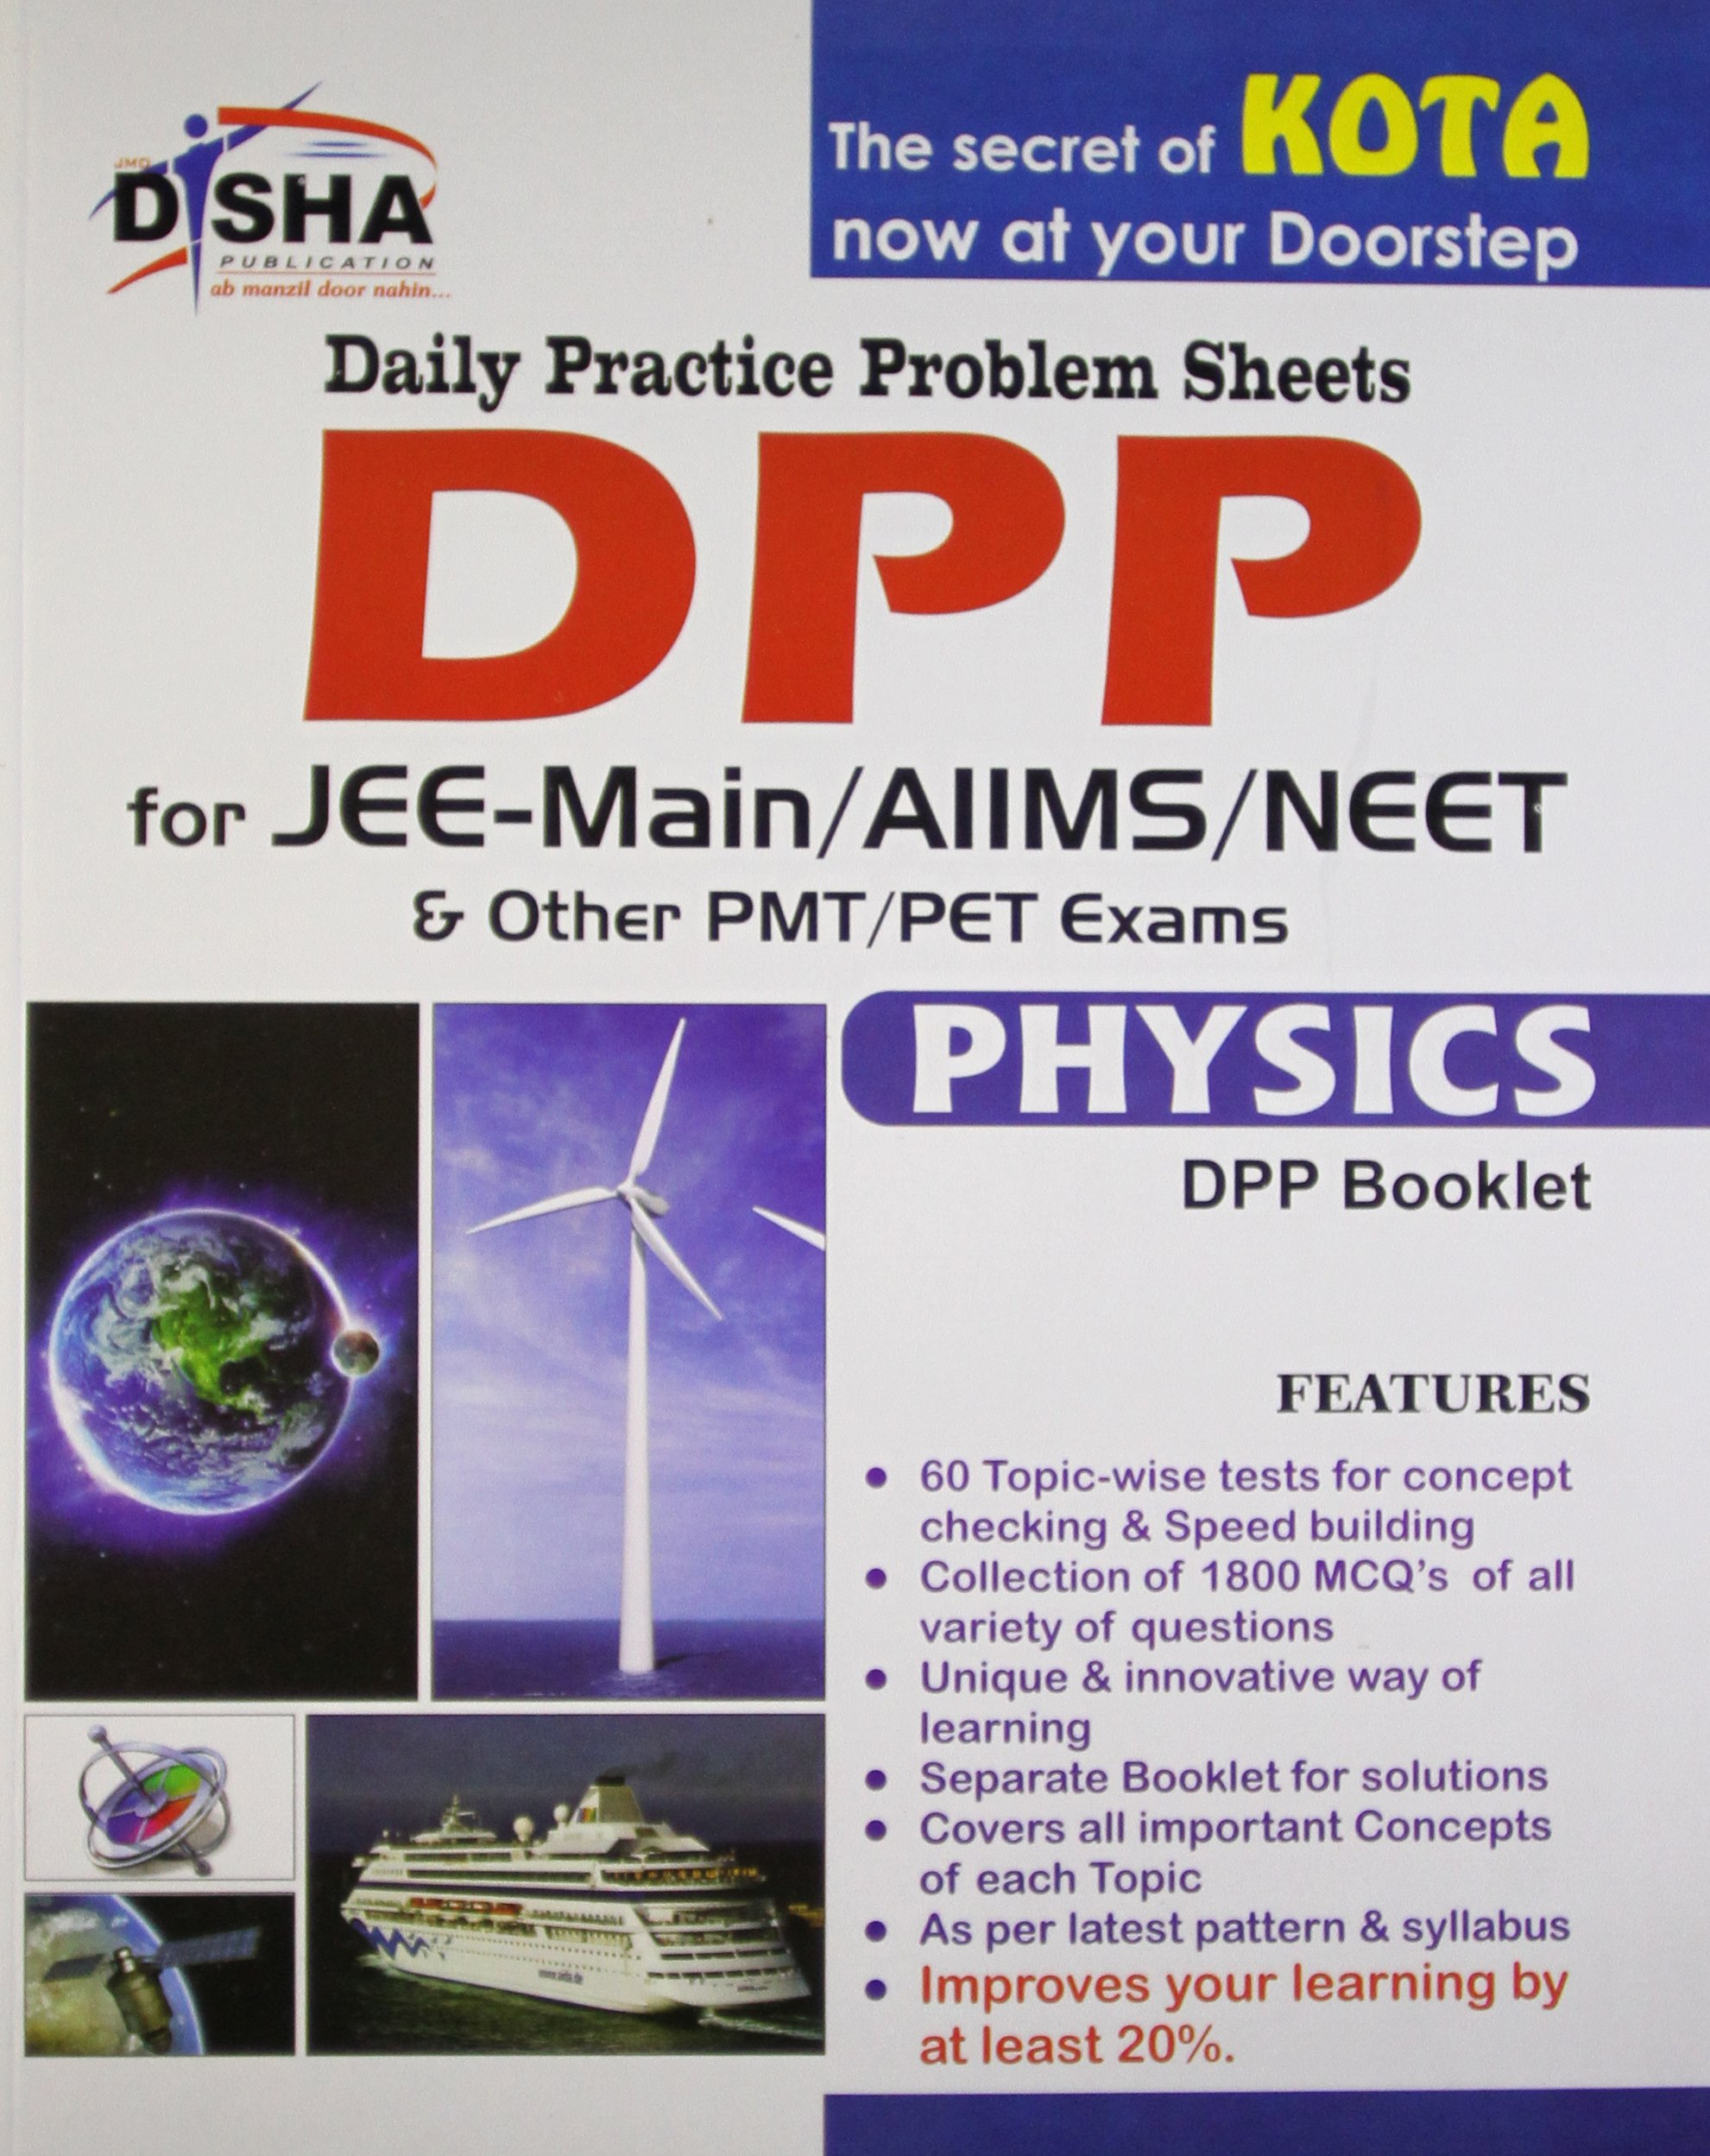 Daily Practice Problem DPP Sheets for JEE Main/AIIMS/NEET Physics